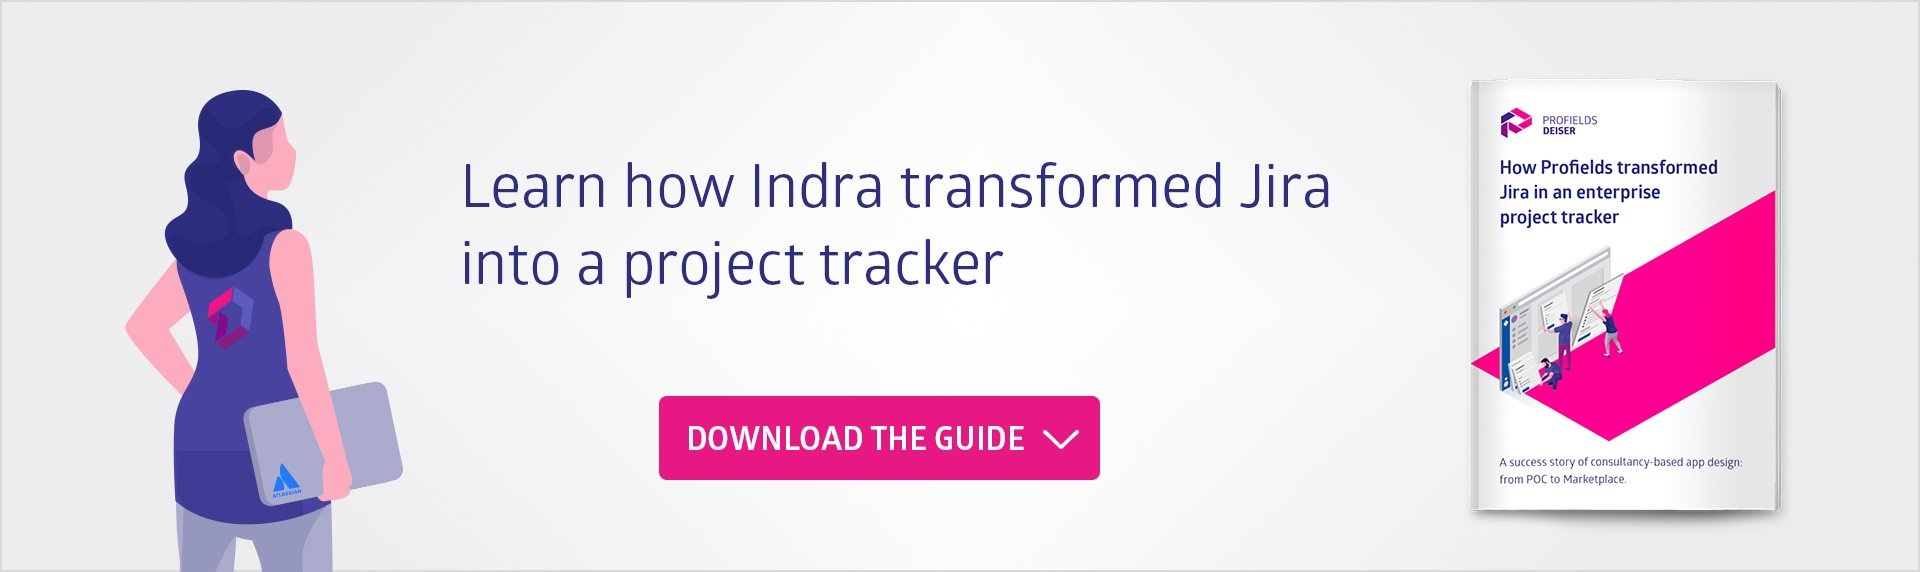 Transform Jira into a project tracker with Profields